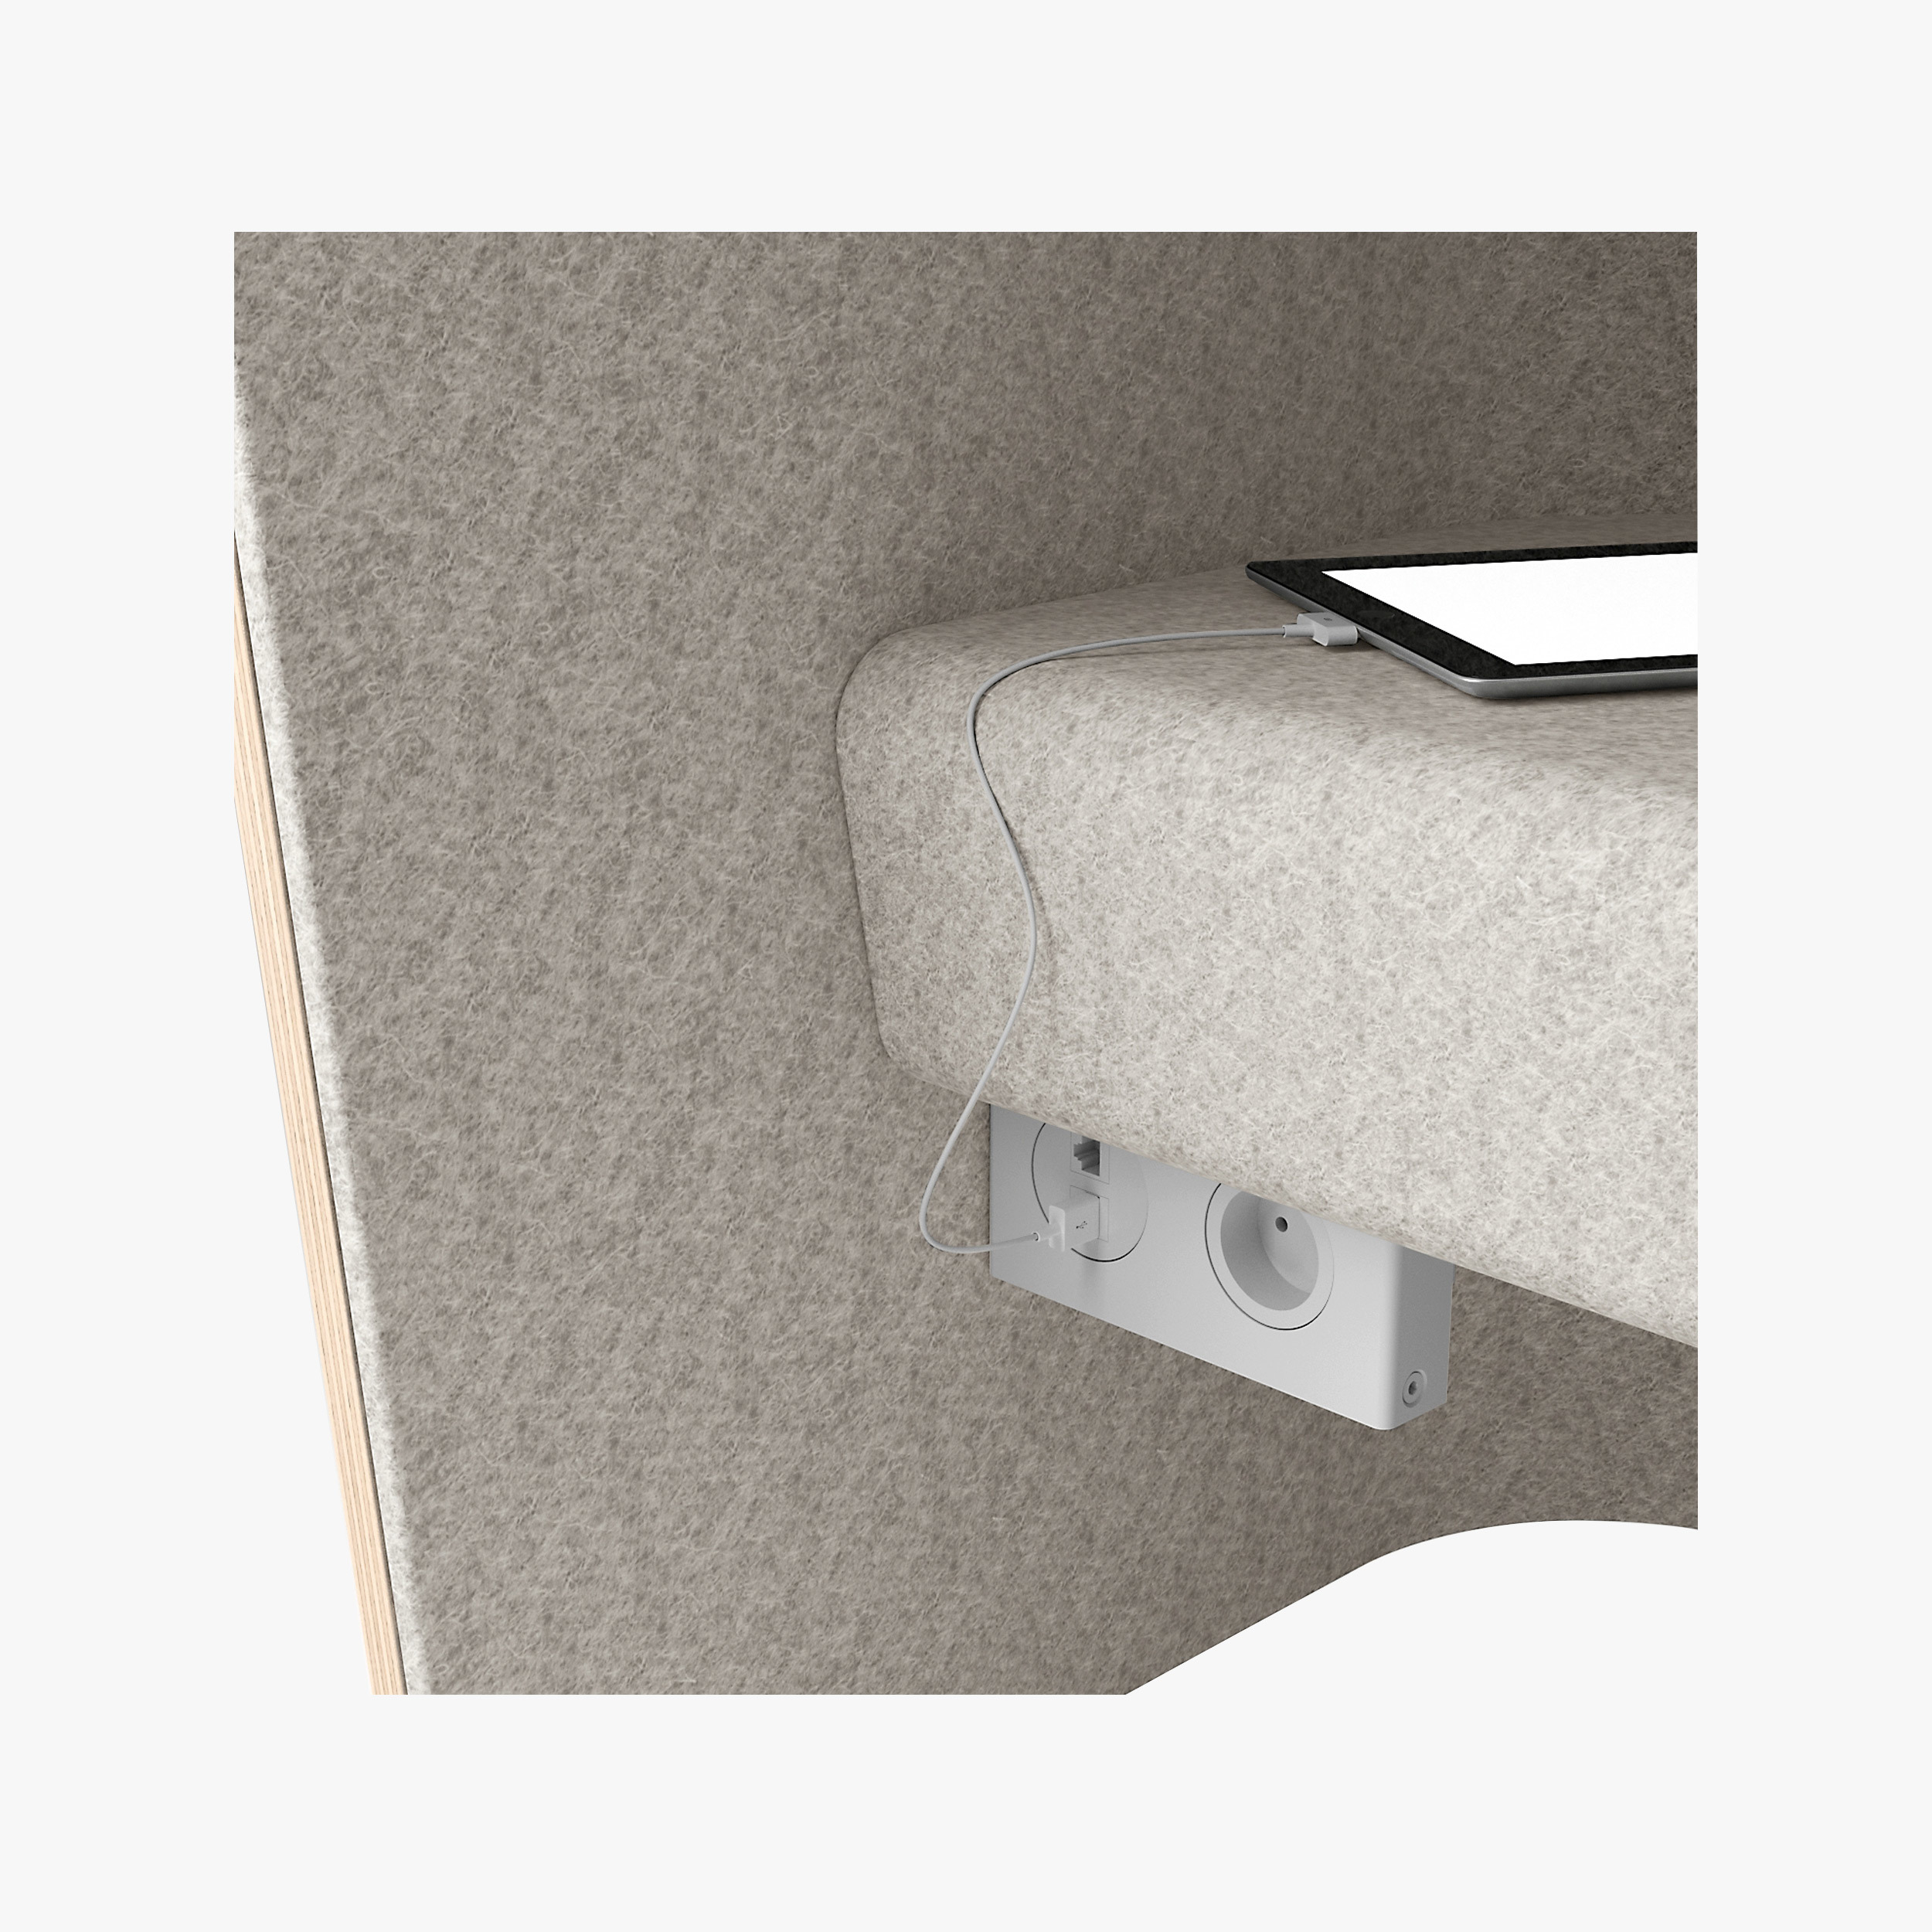 Sinetica We Meet Individual Cubicle With Fabric Interior Showing Power Socket